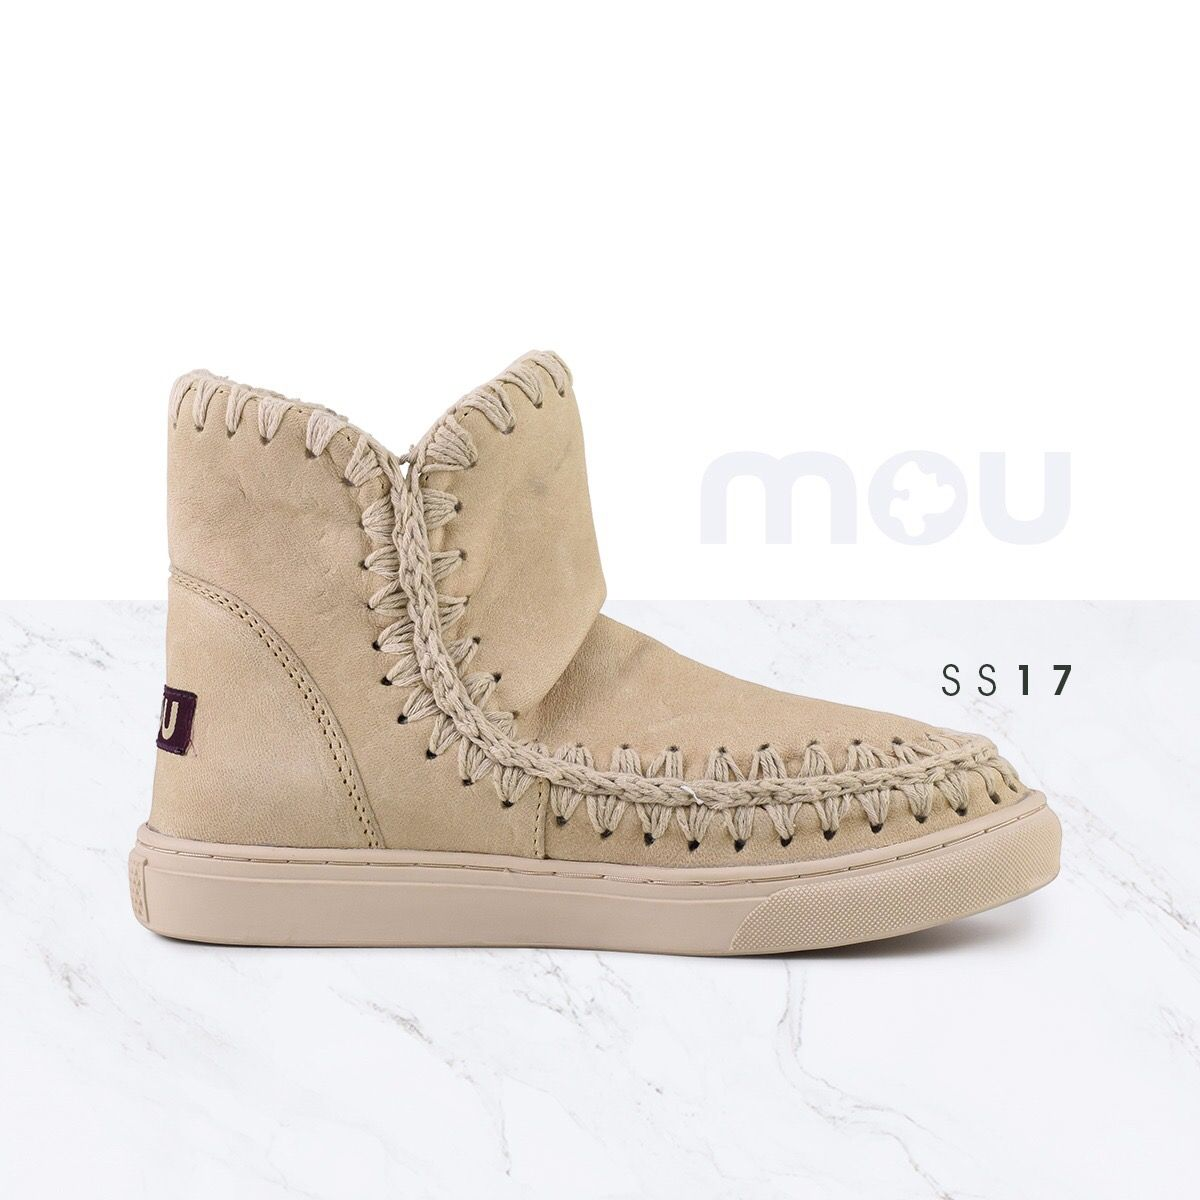 Mou Eskimo In Vintage Leather. Quality Original Recommend Cheap Price Pay With Visa Cheap Price Deals Online Sale Popular E4oWSA